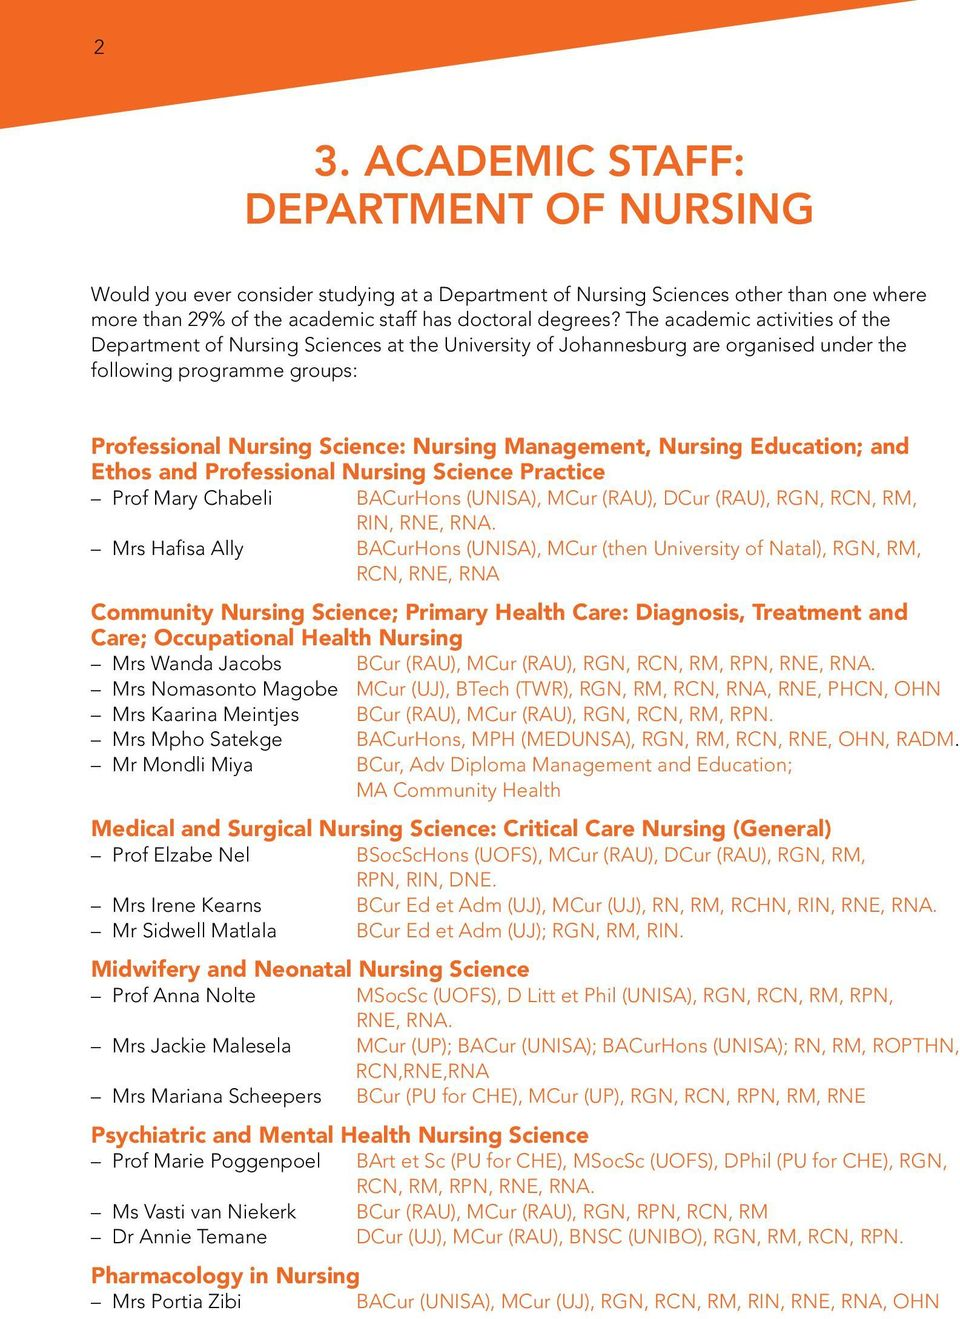 Nursing Education; and Ethos and Professional Nursing Science Practice Prof Mary Chabeli BACurHons (UNISA), MCur (RAU), DCur (RAU), RGN, RCN, RM, RIN, RNE, RNA.